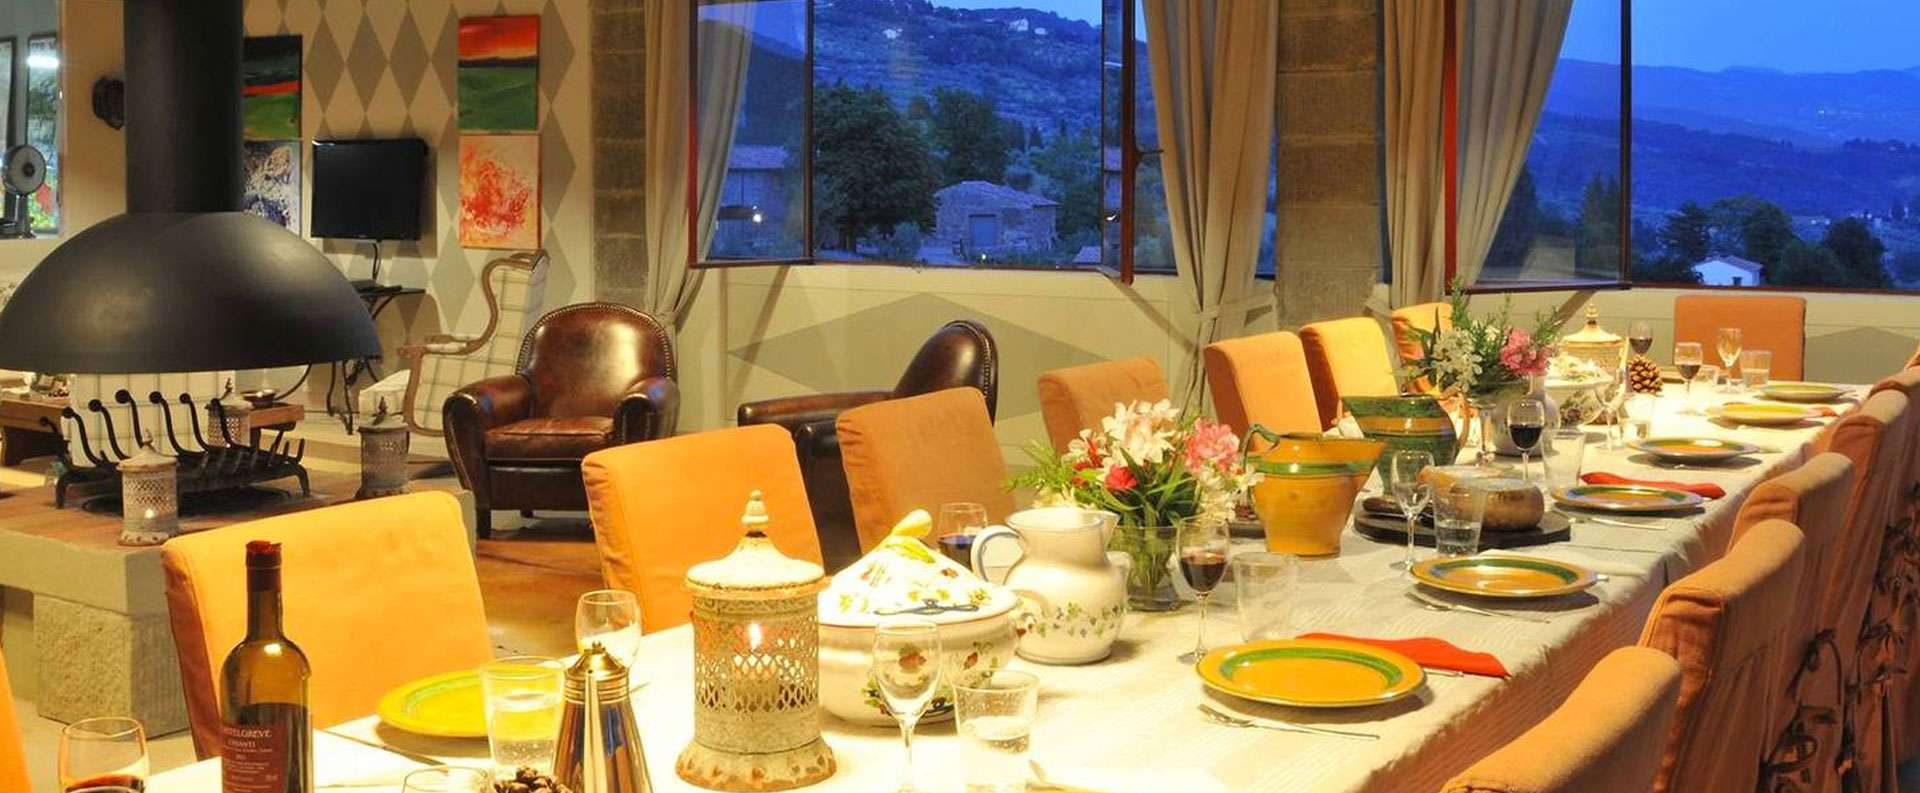 Villa di Petroio - Dining at dusk...perfect for sharing the days experiences.